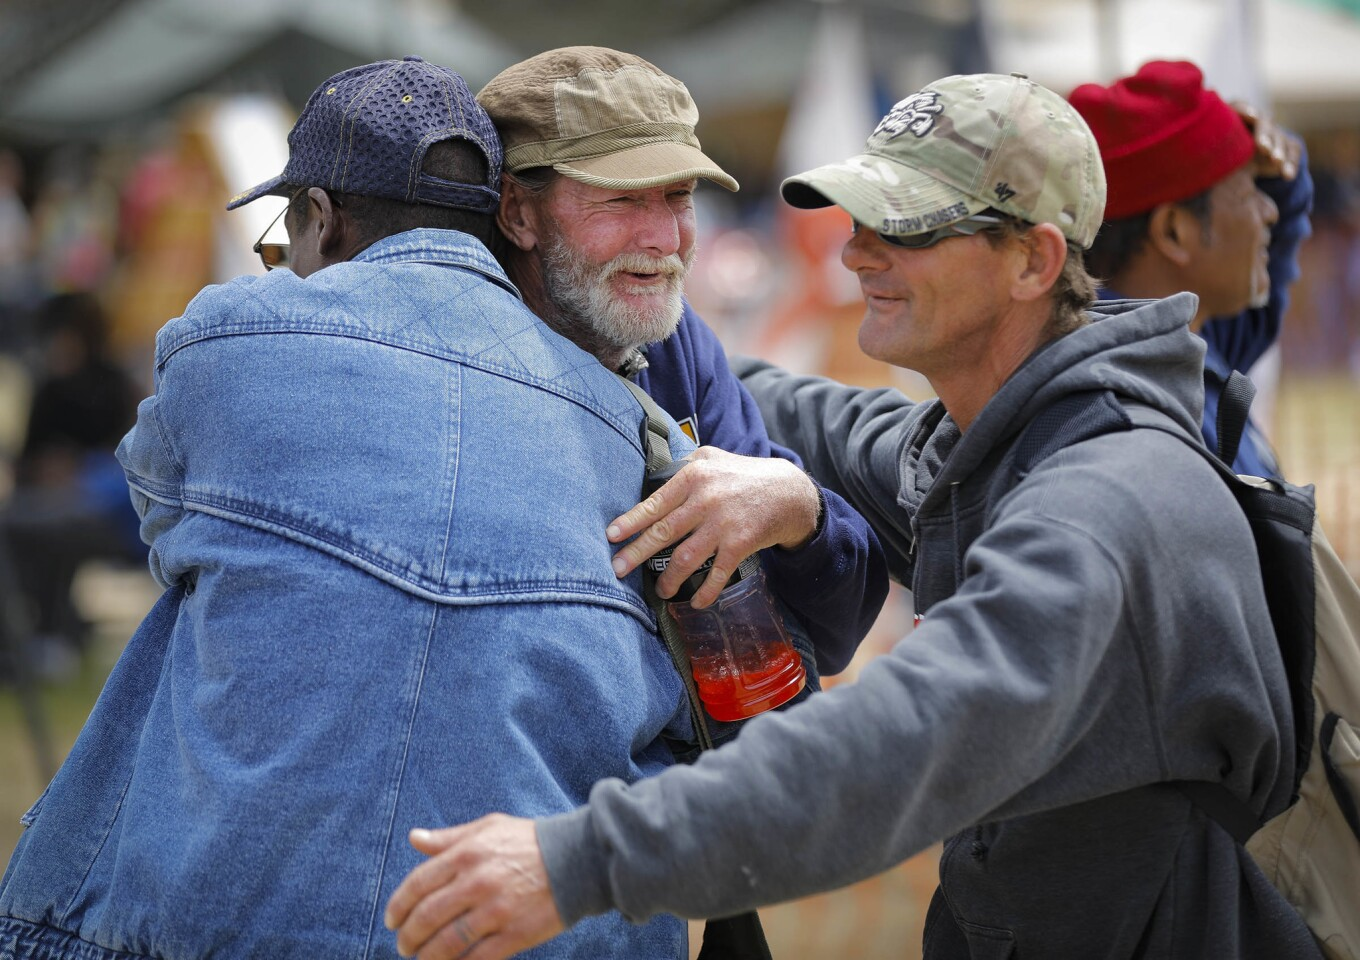 Navy veteran Sean Reilly, center, who has been homeless off and on over the past 15-years gets a hug from from friends during Stand Down 2018 at San Diego High School. The annual three-day event hosted by Veterans Village of San Diego began Friday and will help 800 veterans and their family members with a wide variety of services.